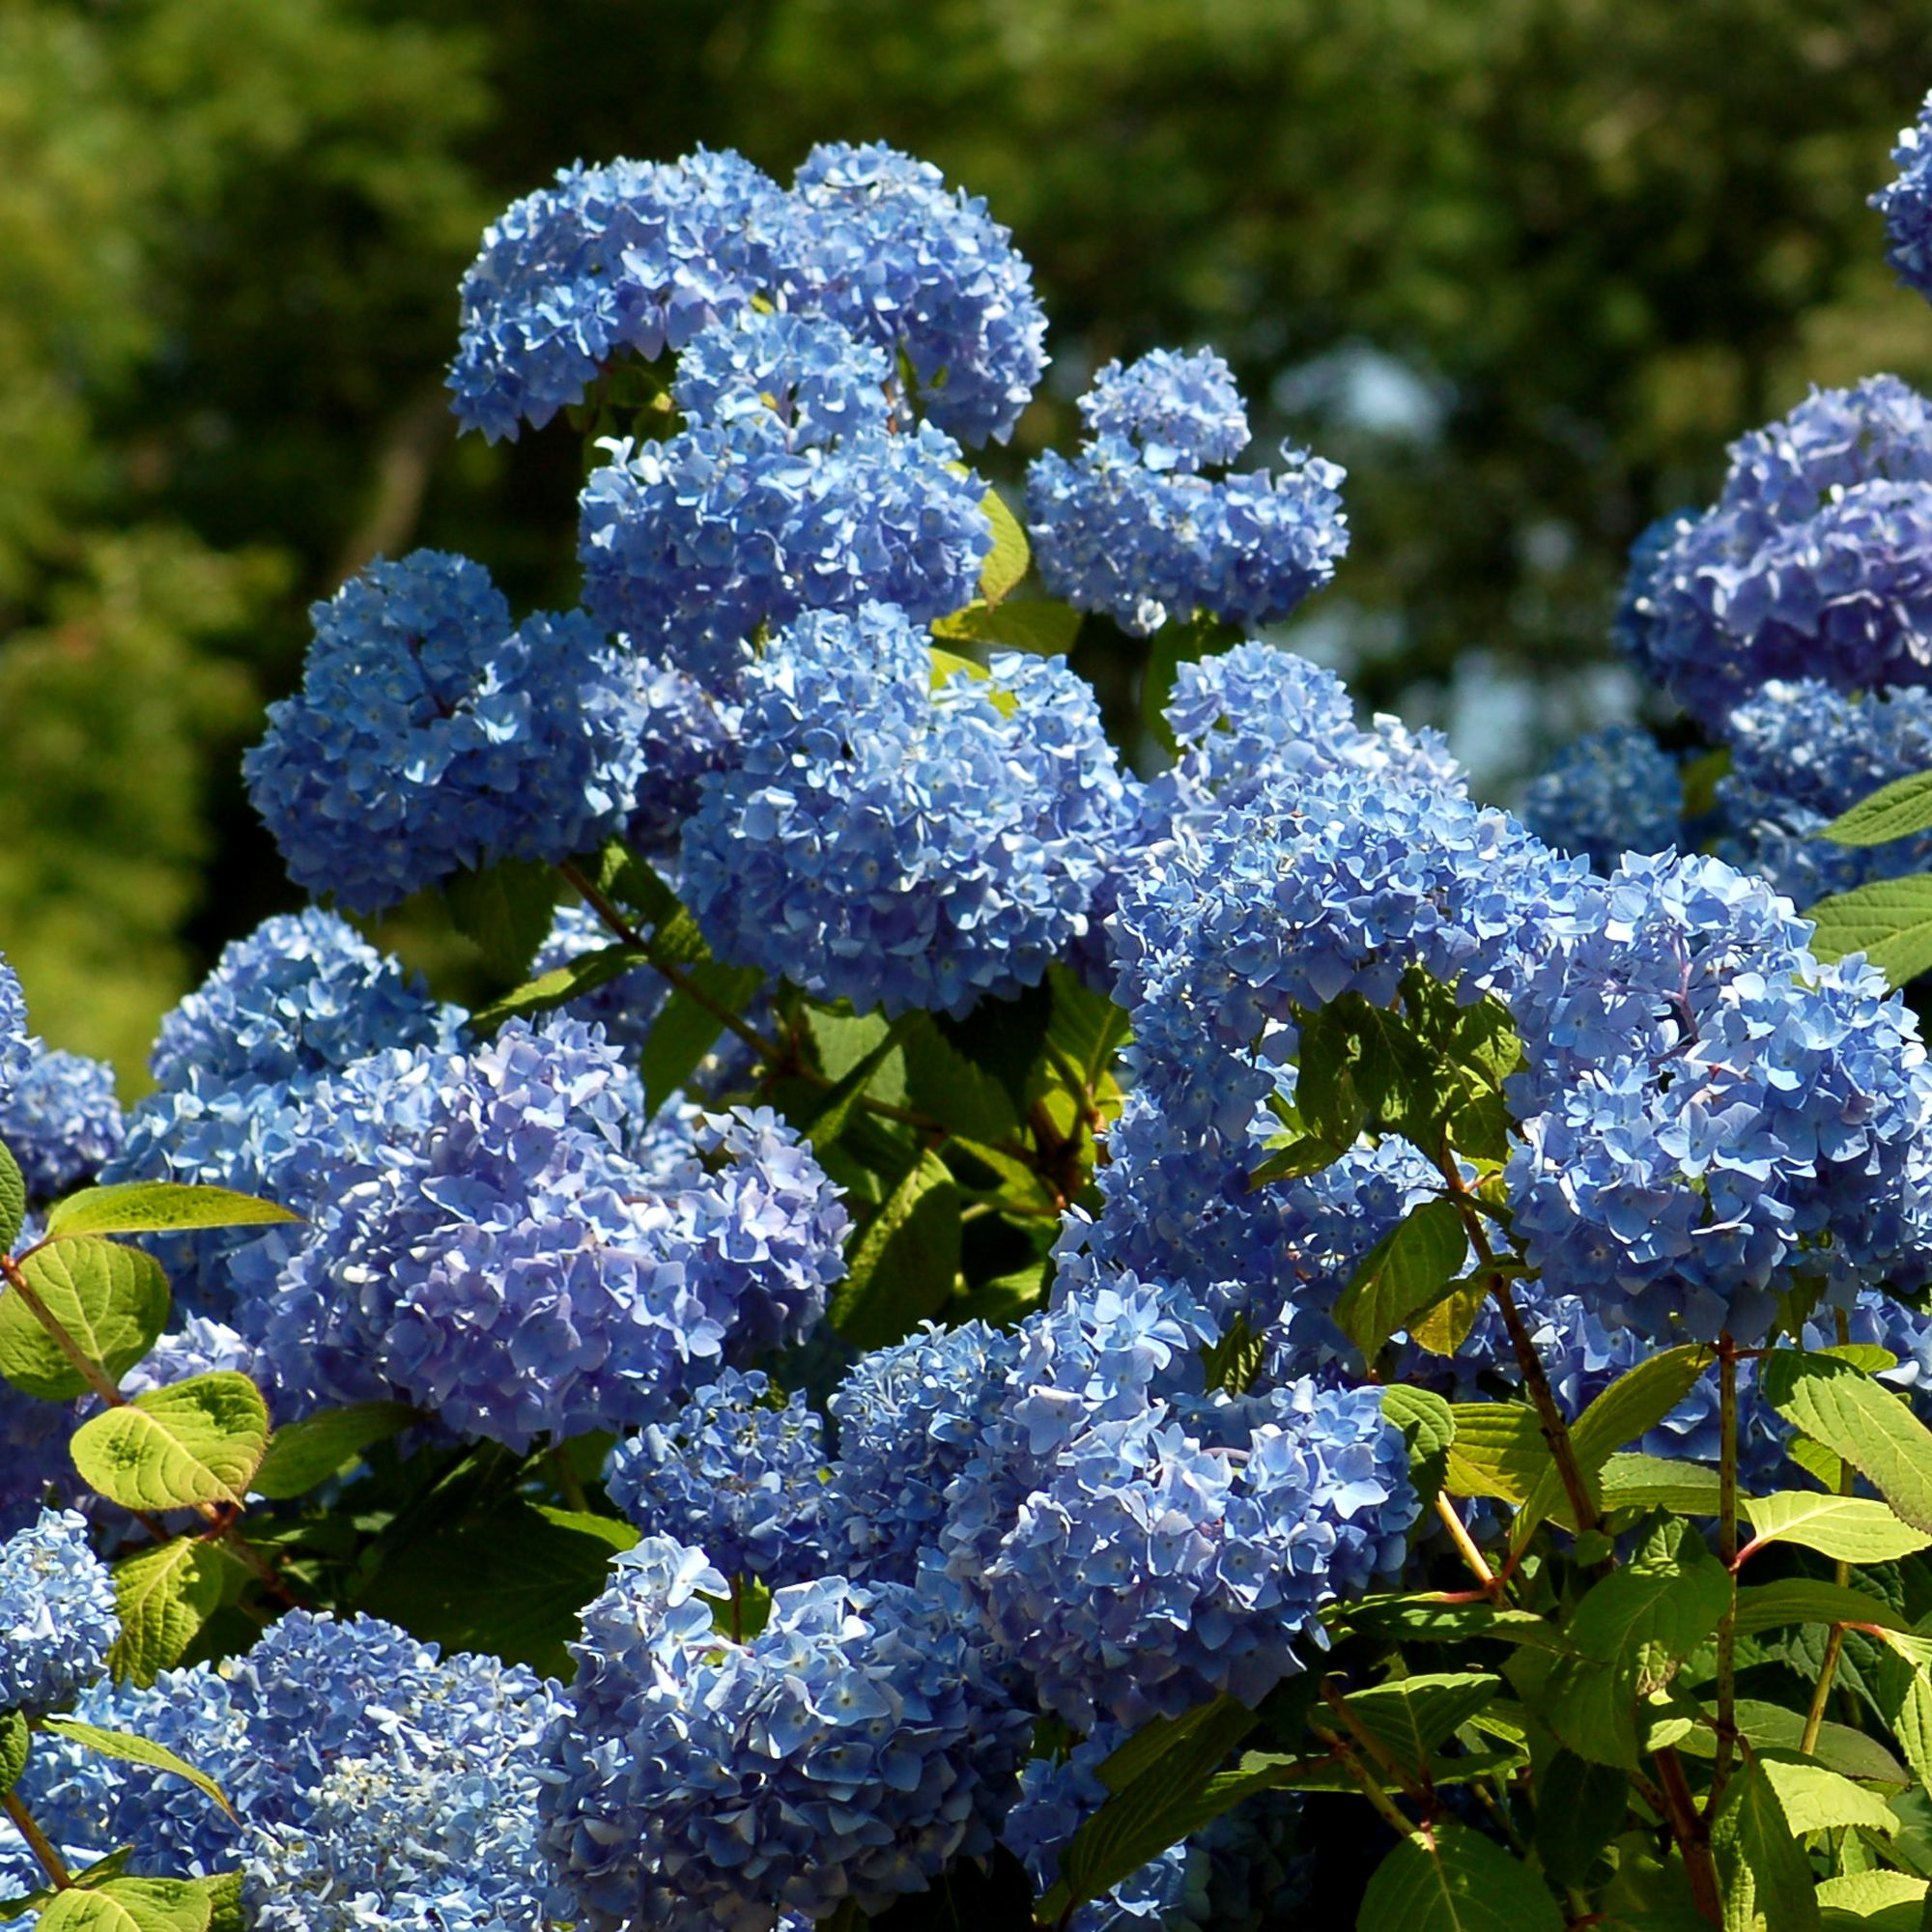 Hydrangea Shrubs Learn About Some Popular Types